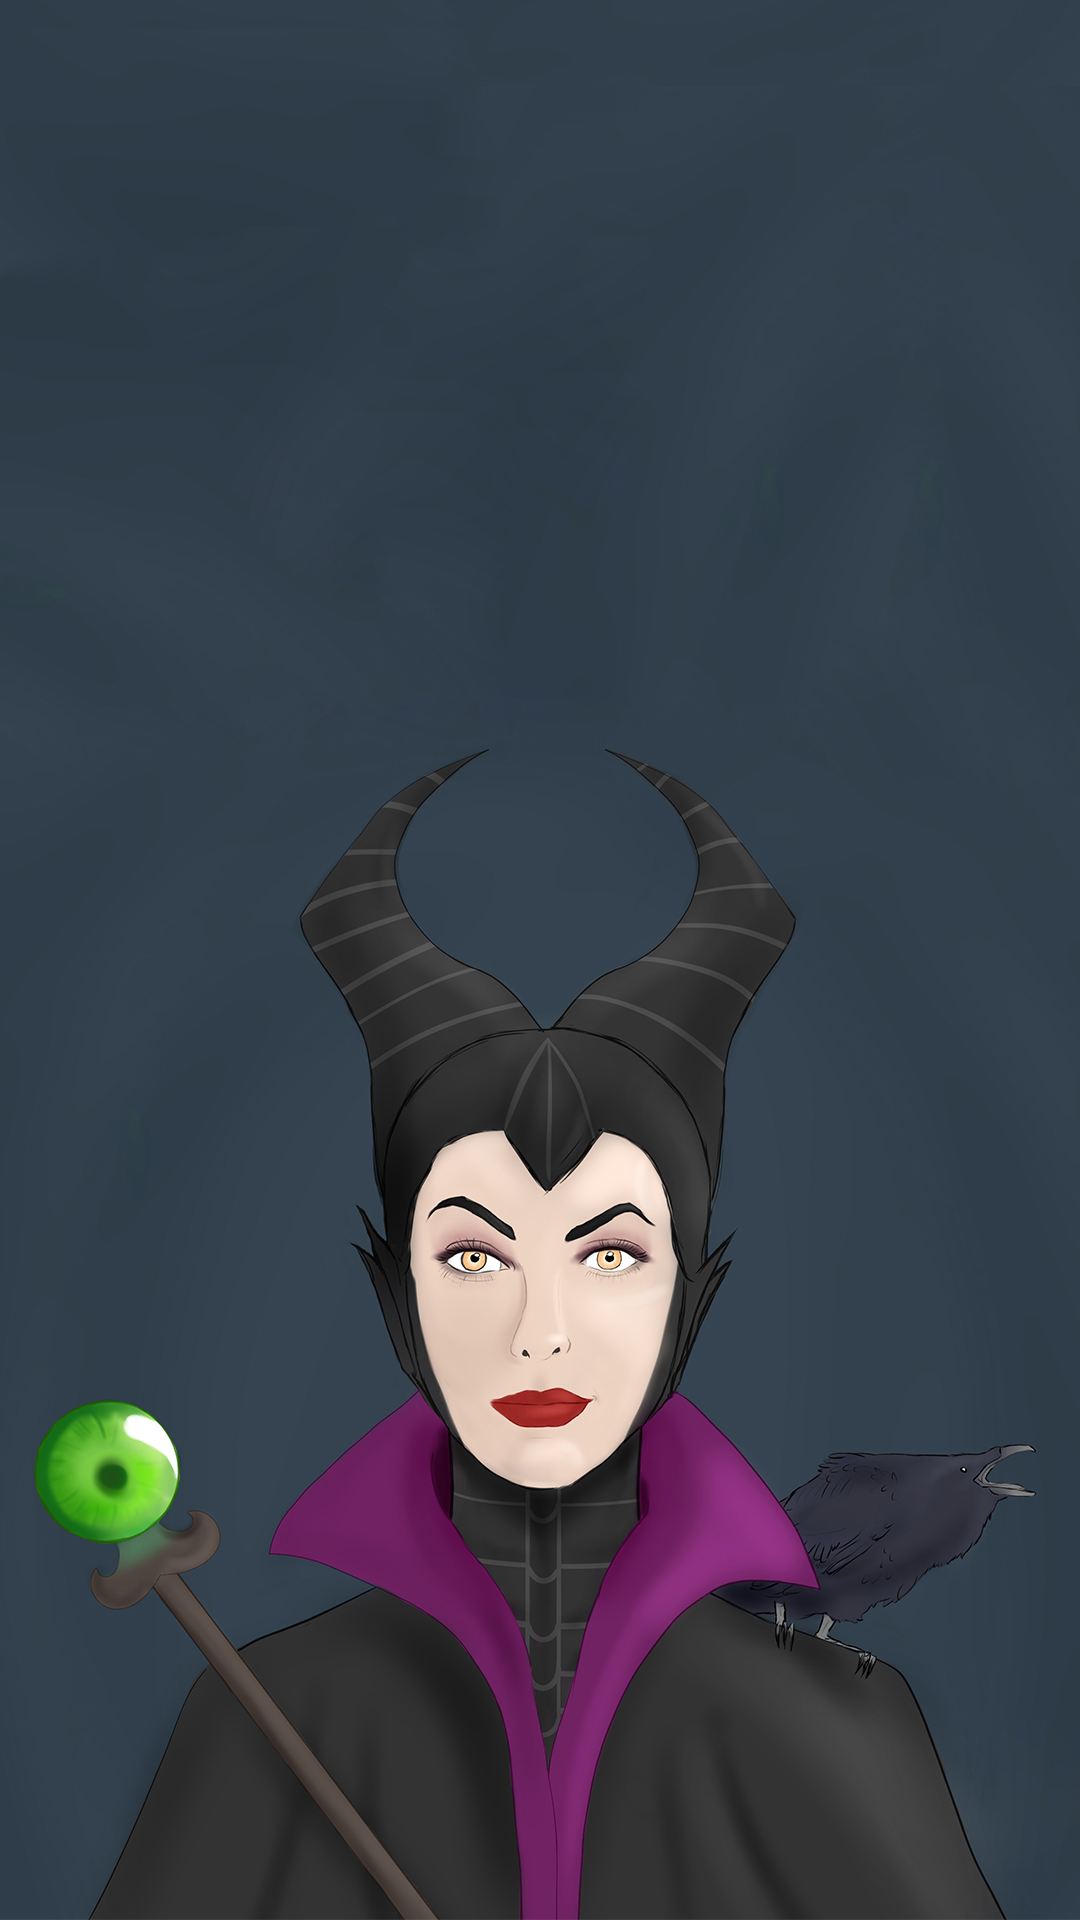 Maleficent htc one wallpaper